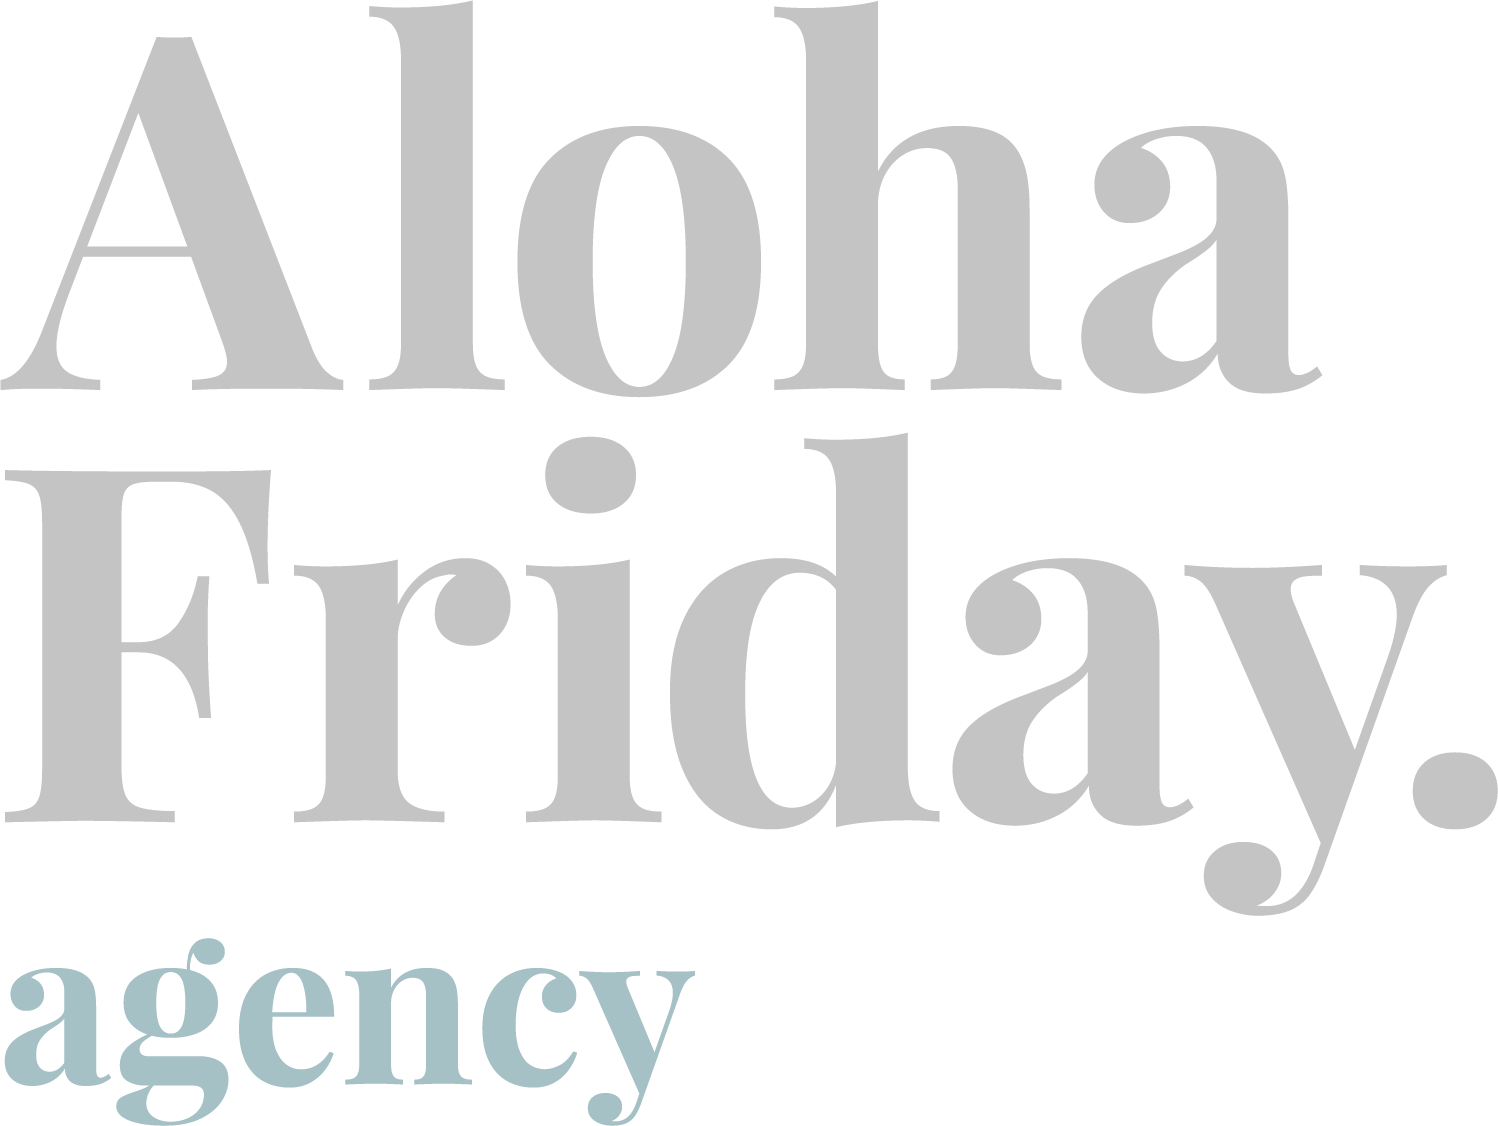 Aloha Friday Agency